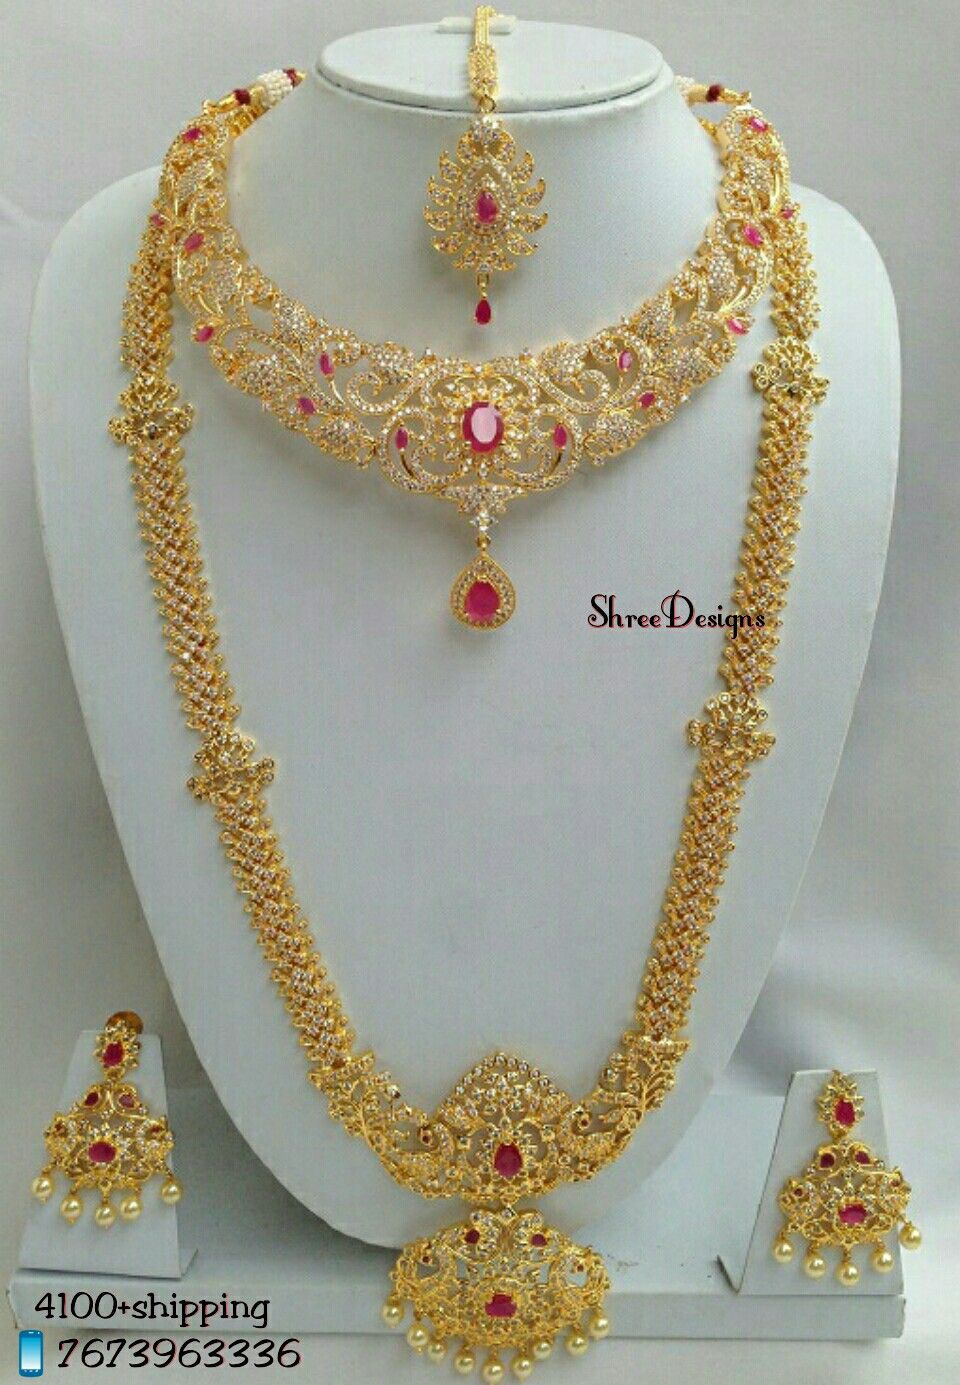 Wedding Jewellery Whatsapp 7673963336 Indian Brides Jewelry Gold Necklace Indian Bridal Jewelry Gold Jewelry Fashion